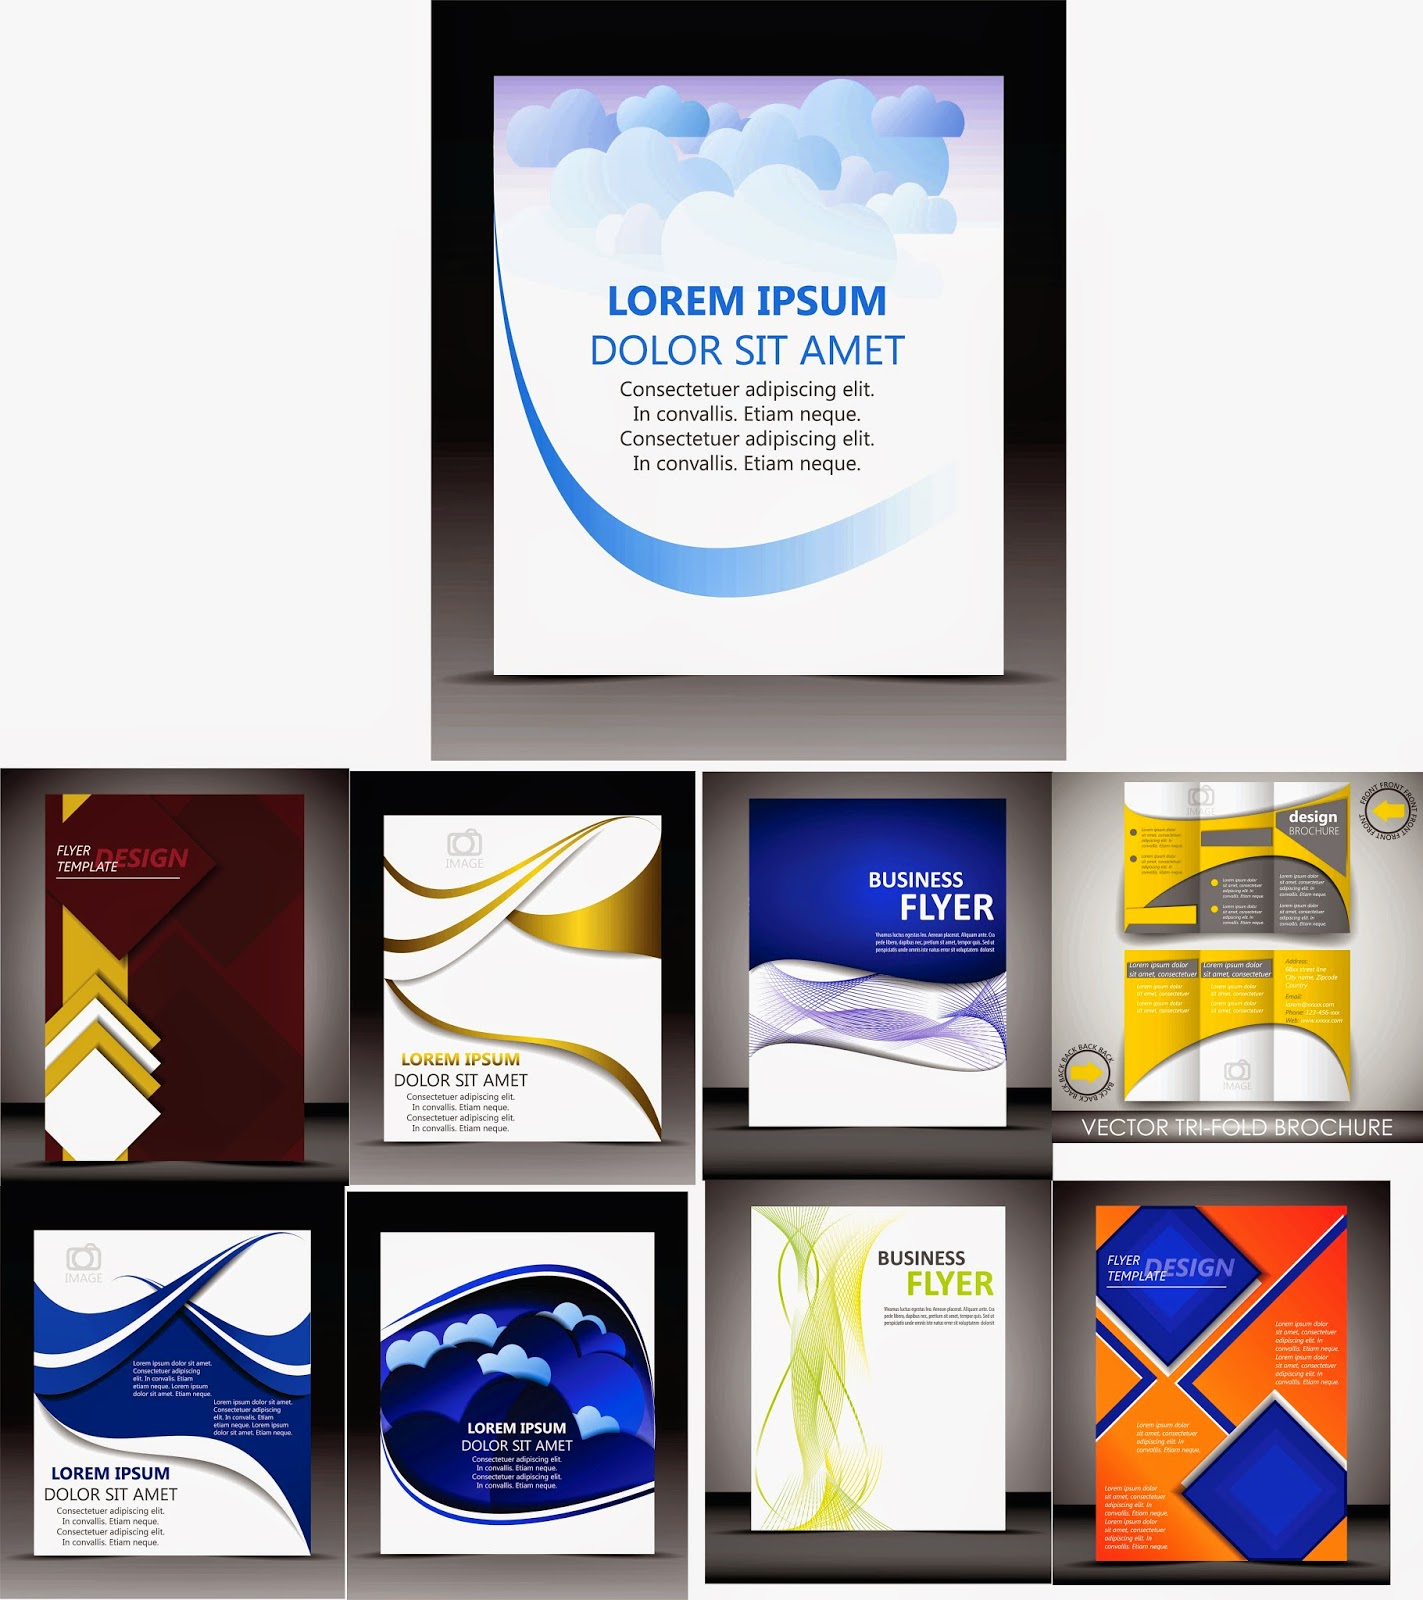 Brochure design cdr file free download for Brochure design templates cdr format free download